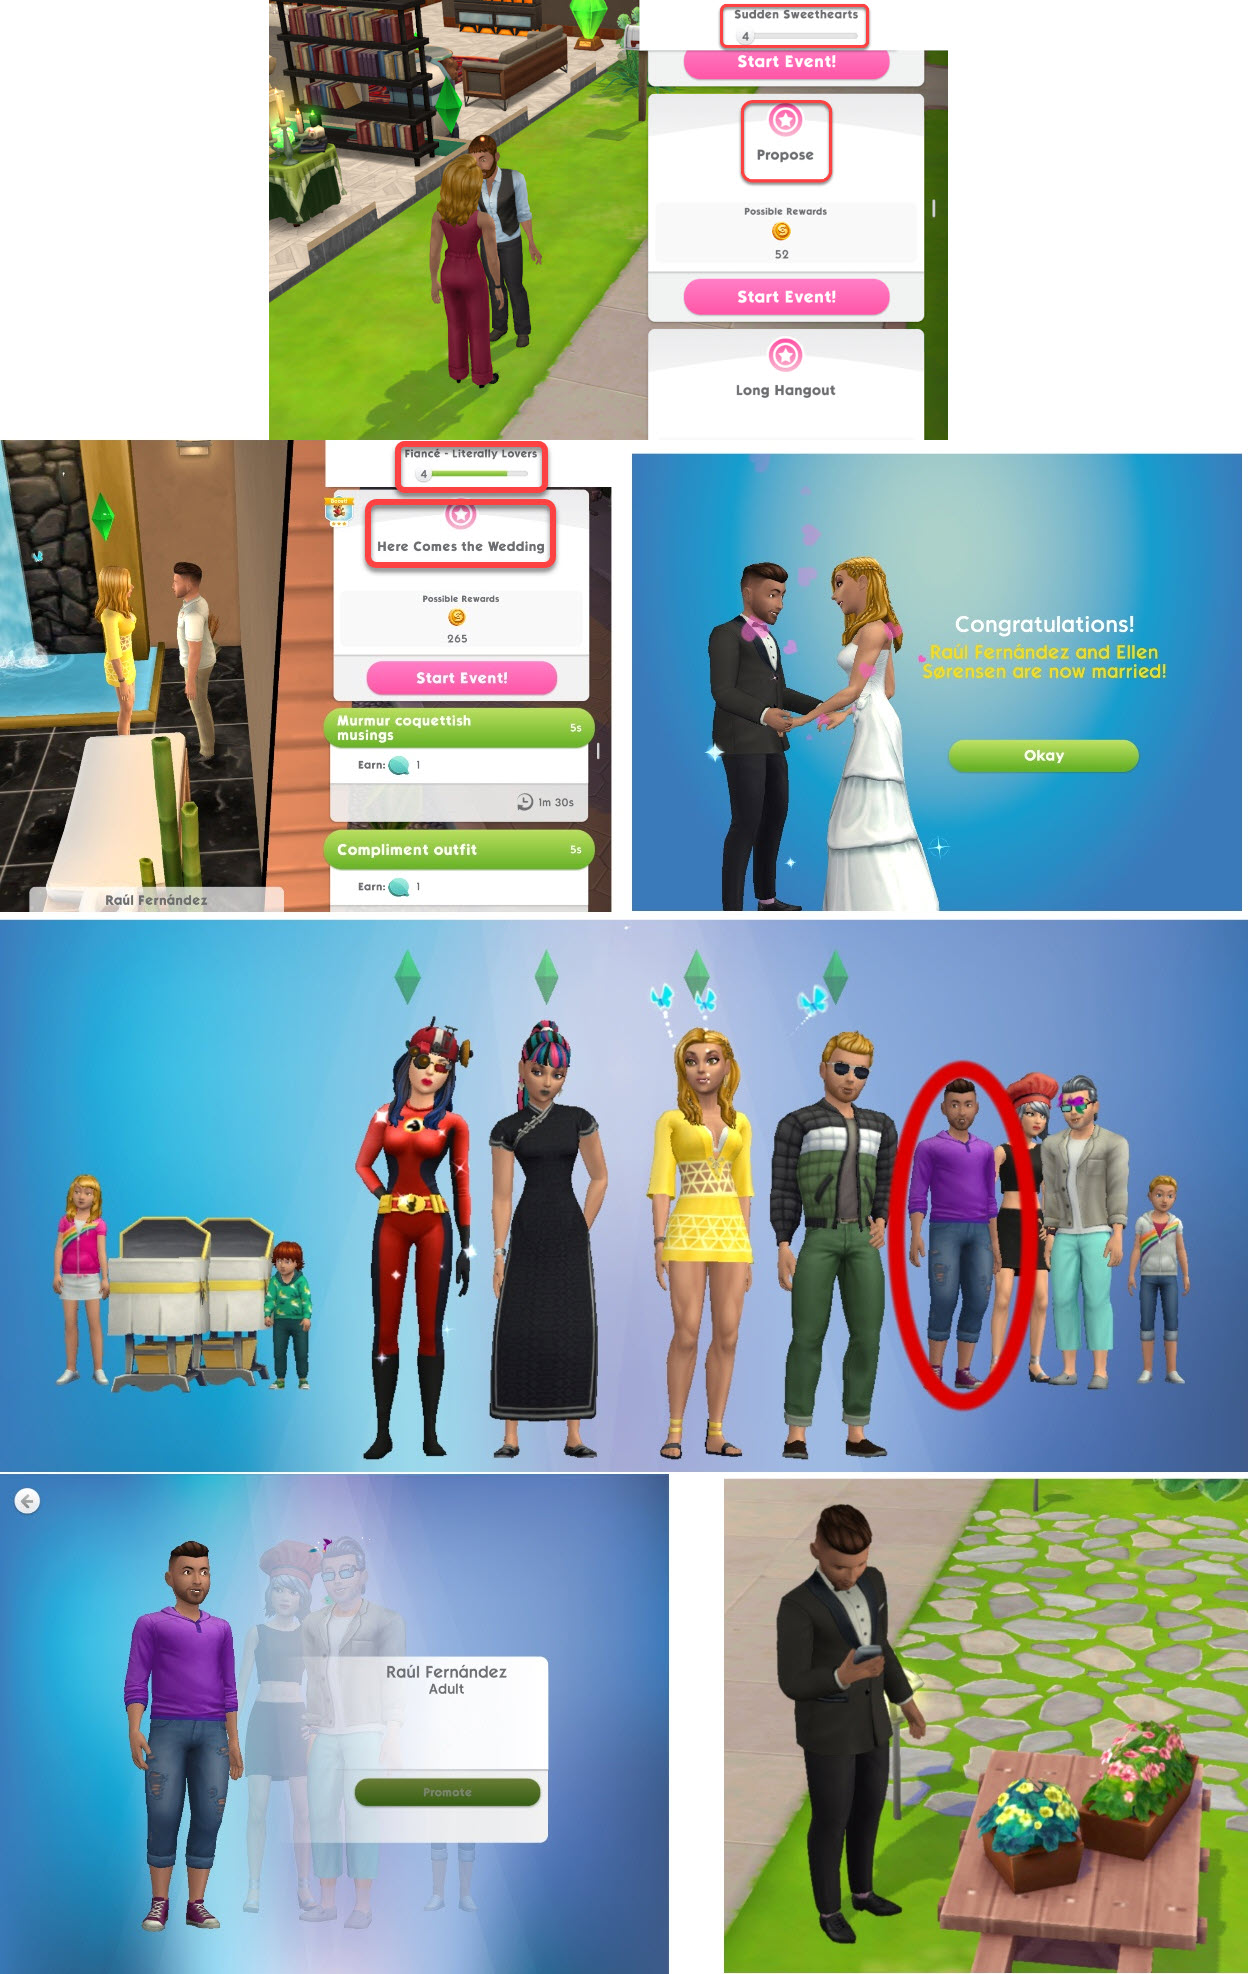 How do you get married in I am sims 3 am on iPad? - Answers